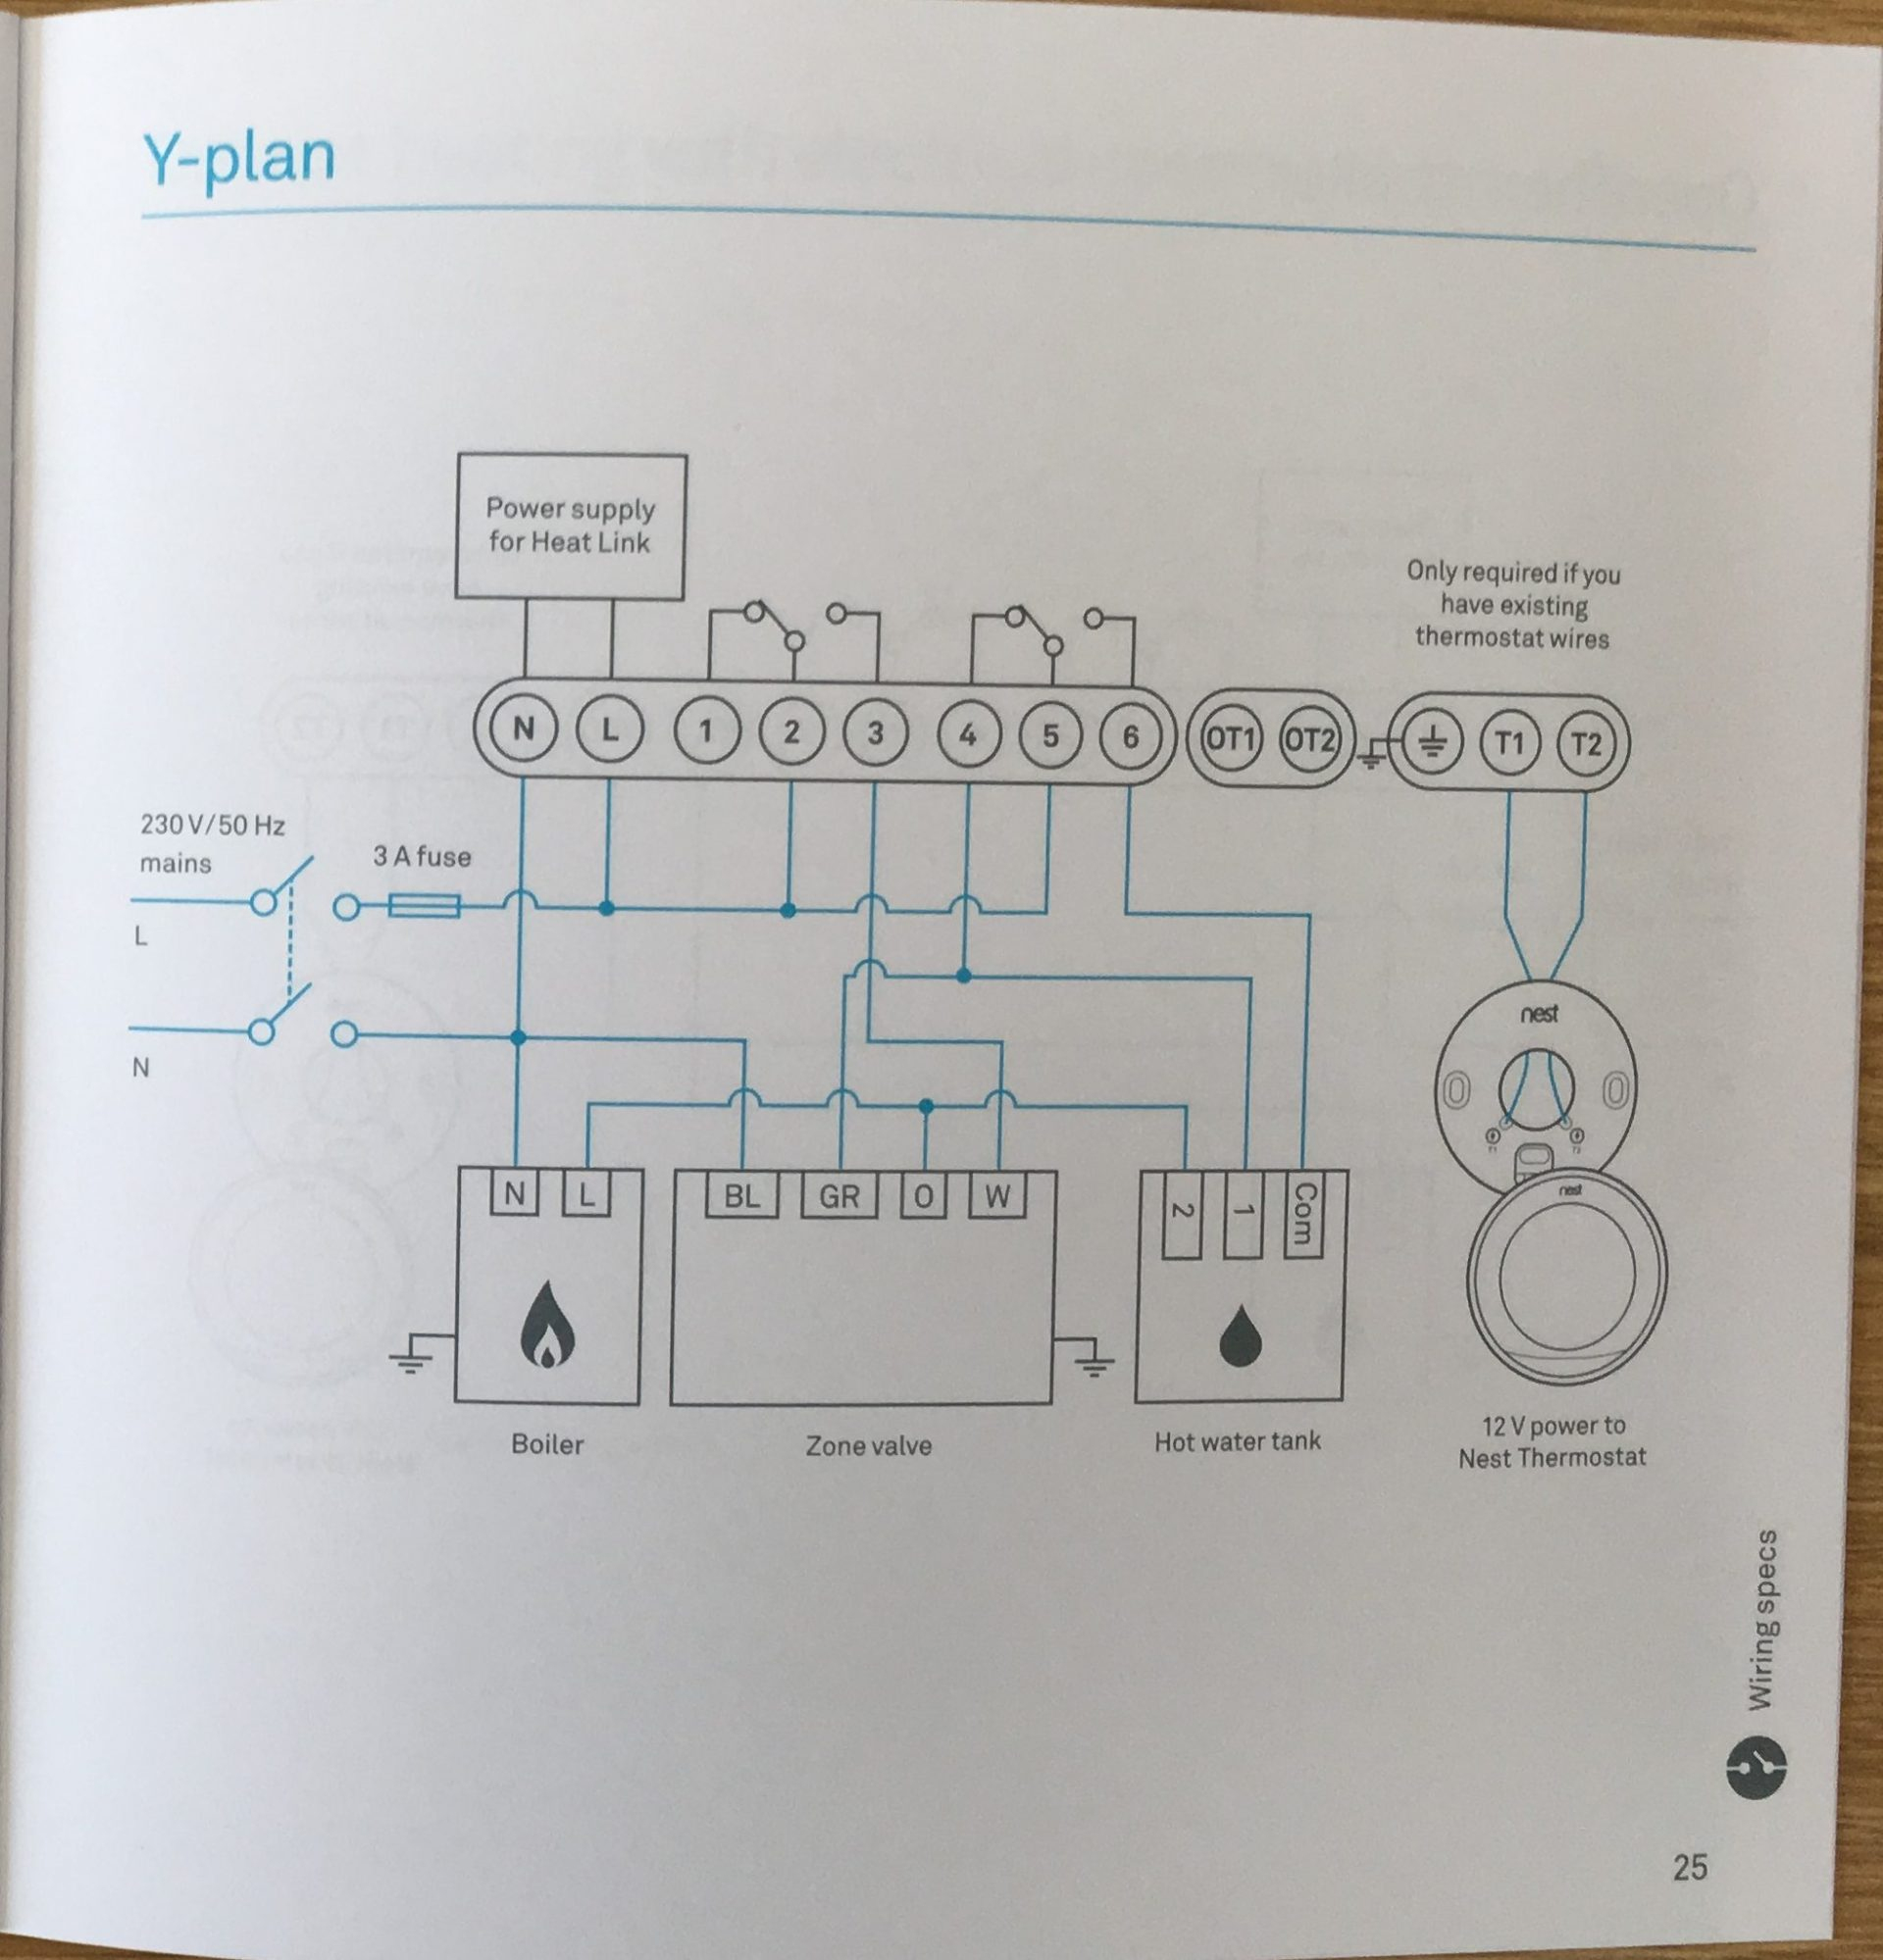 How To Install The Nest Learning Thermostat (3Rd Gen) In A Y-Plan - Nest Thermostat Wiring Diagram.